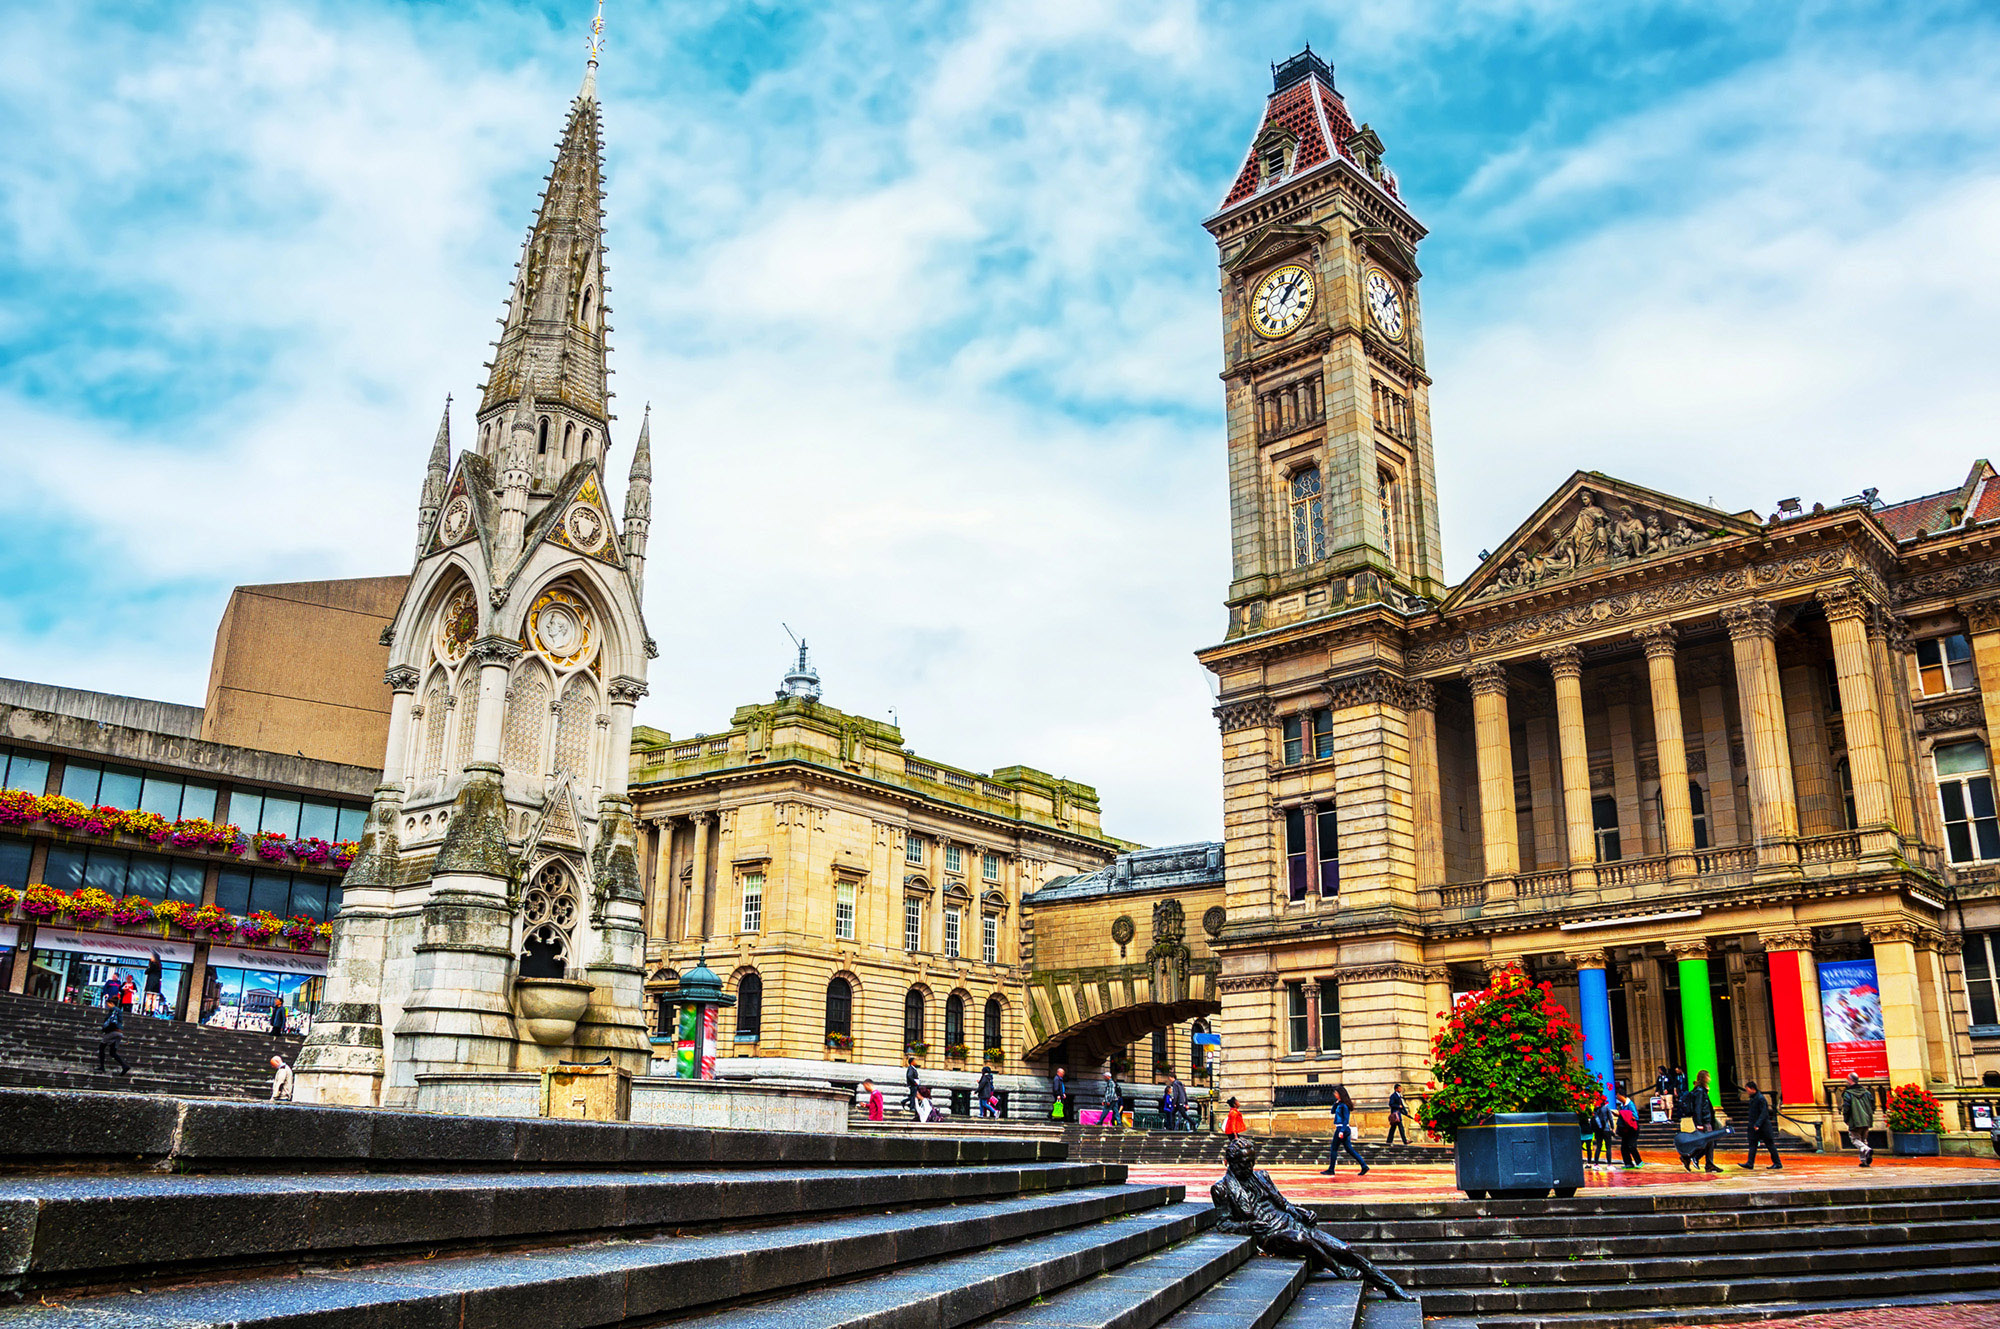 Chamberlain Square in Birmingham, UK